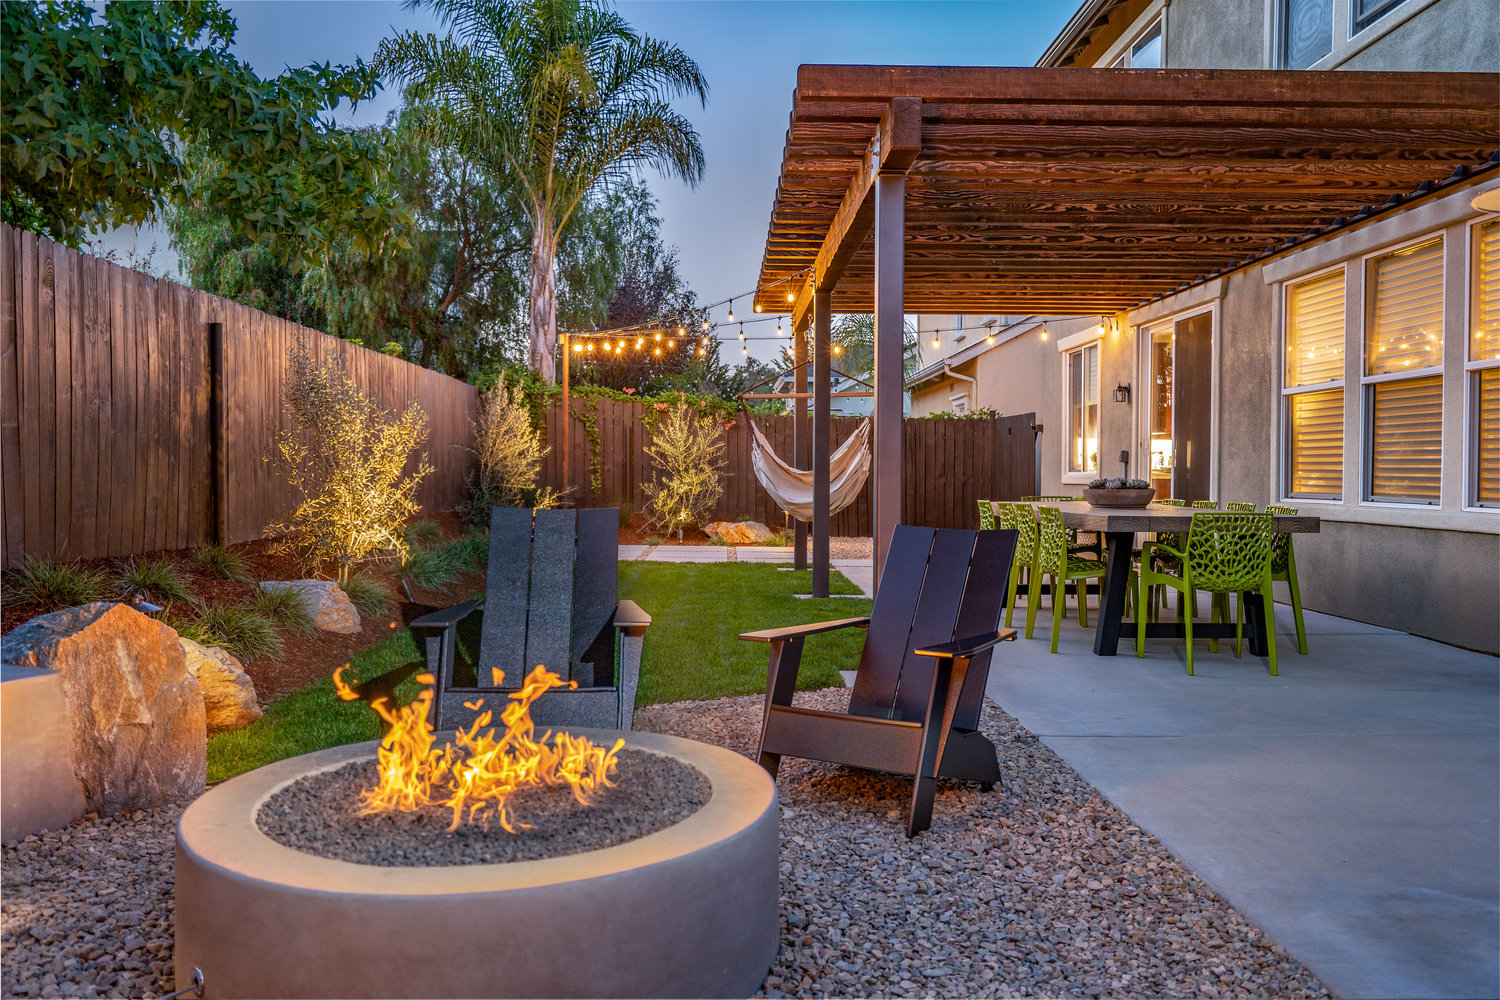 Fire-pit-with-adirondack-chairs.jpg